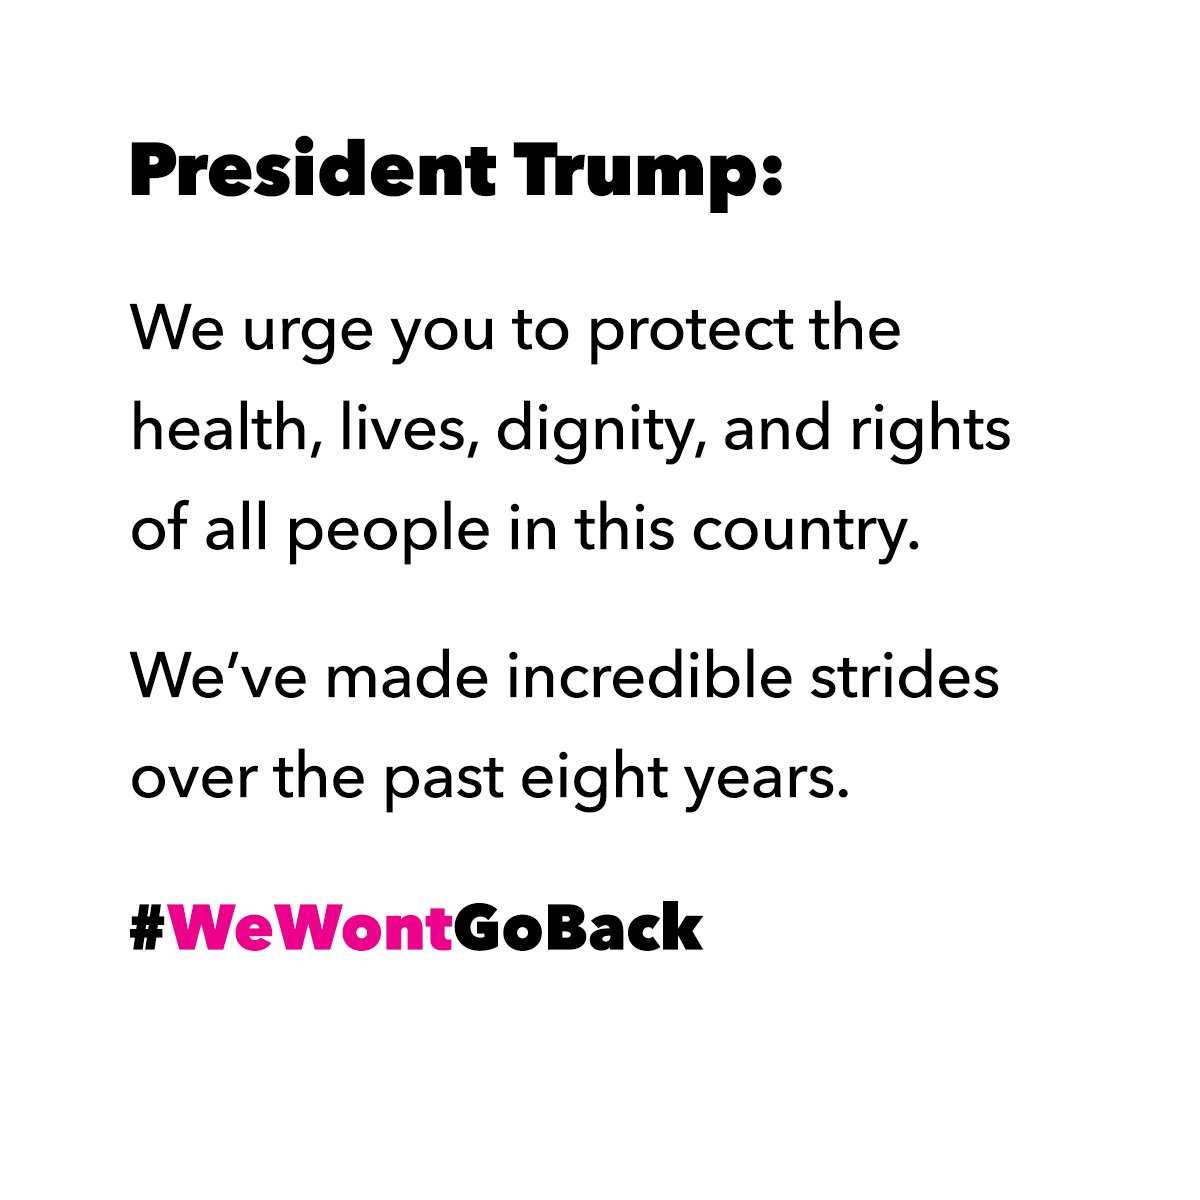 We have a message for President Trump: #WeWontGoBack